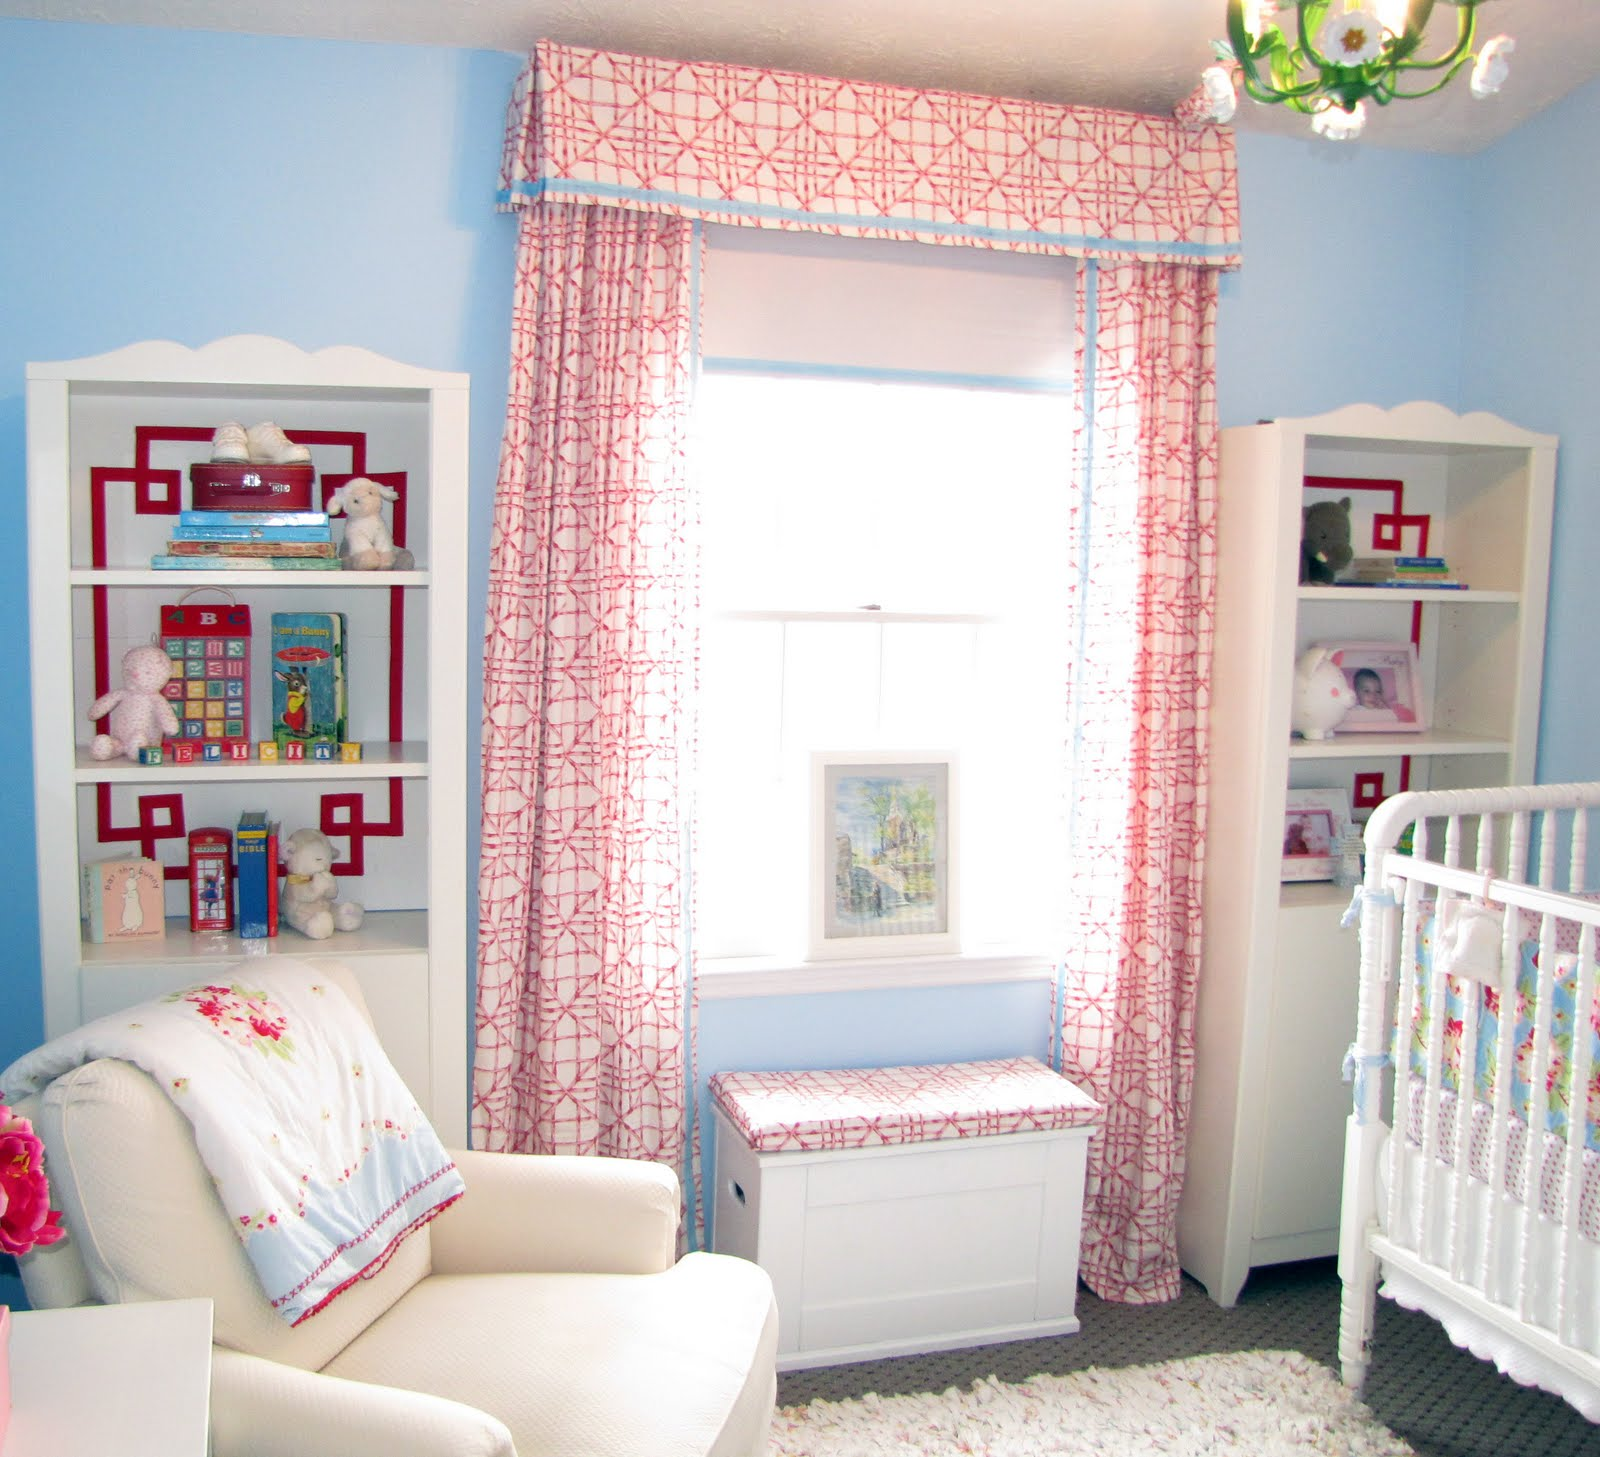 Curtains In The Nursery For Girls Bibbidi Bobbidi Beautiful DIY Drapes And Valance From Sheets